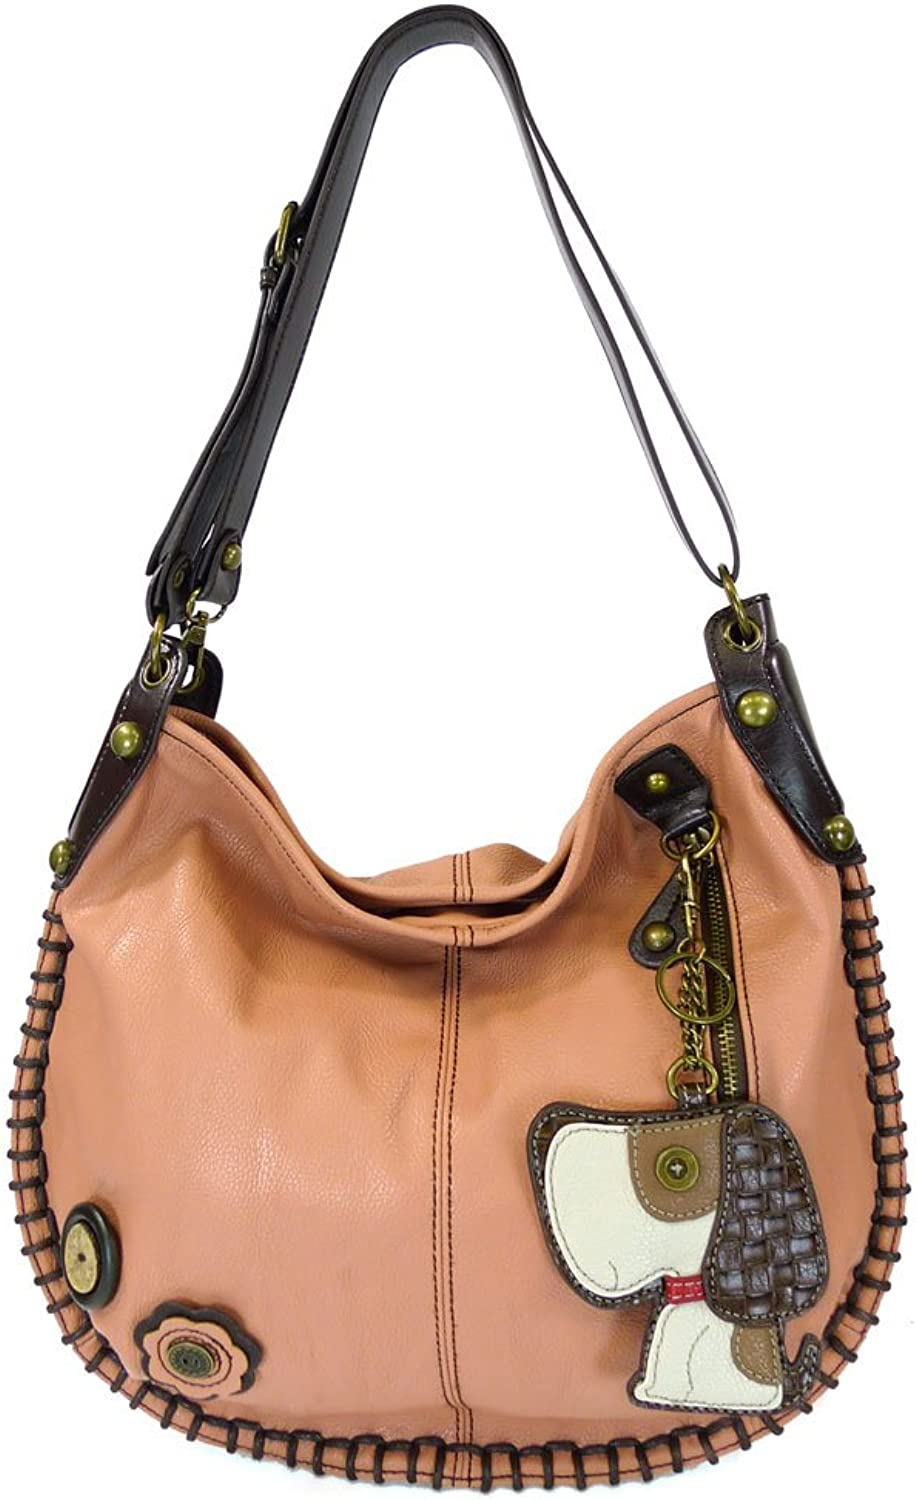 Chala Hobo Crossbody Large Tote Bag DOG Vegan leather PINK Congreenible